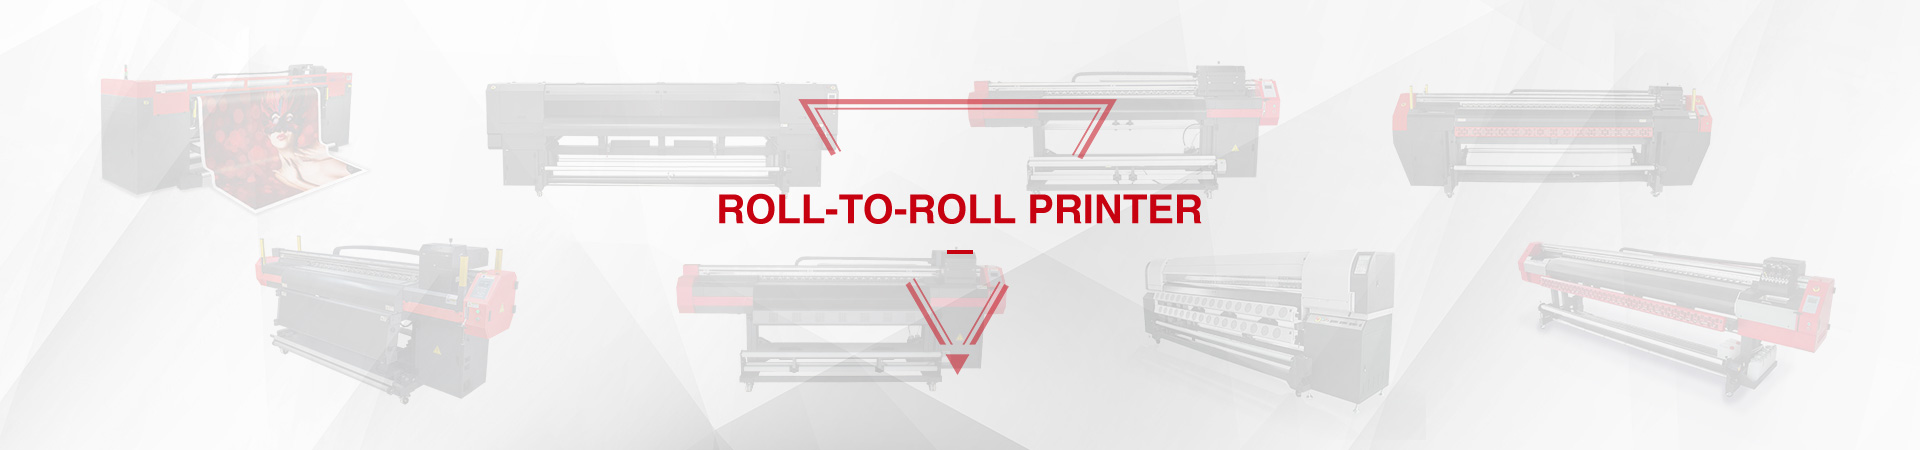 Roll-to-Roll Printer